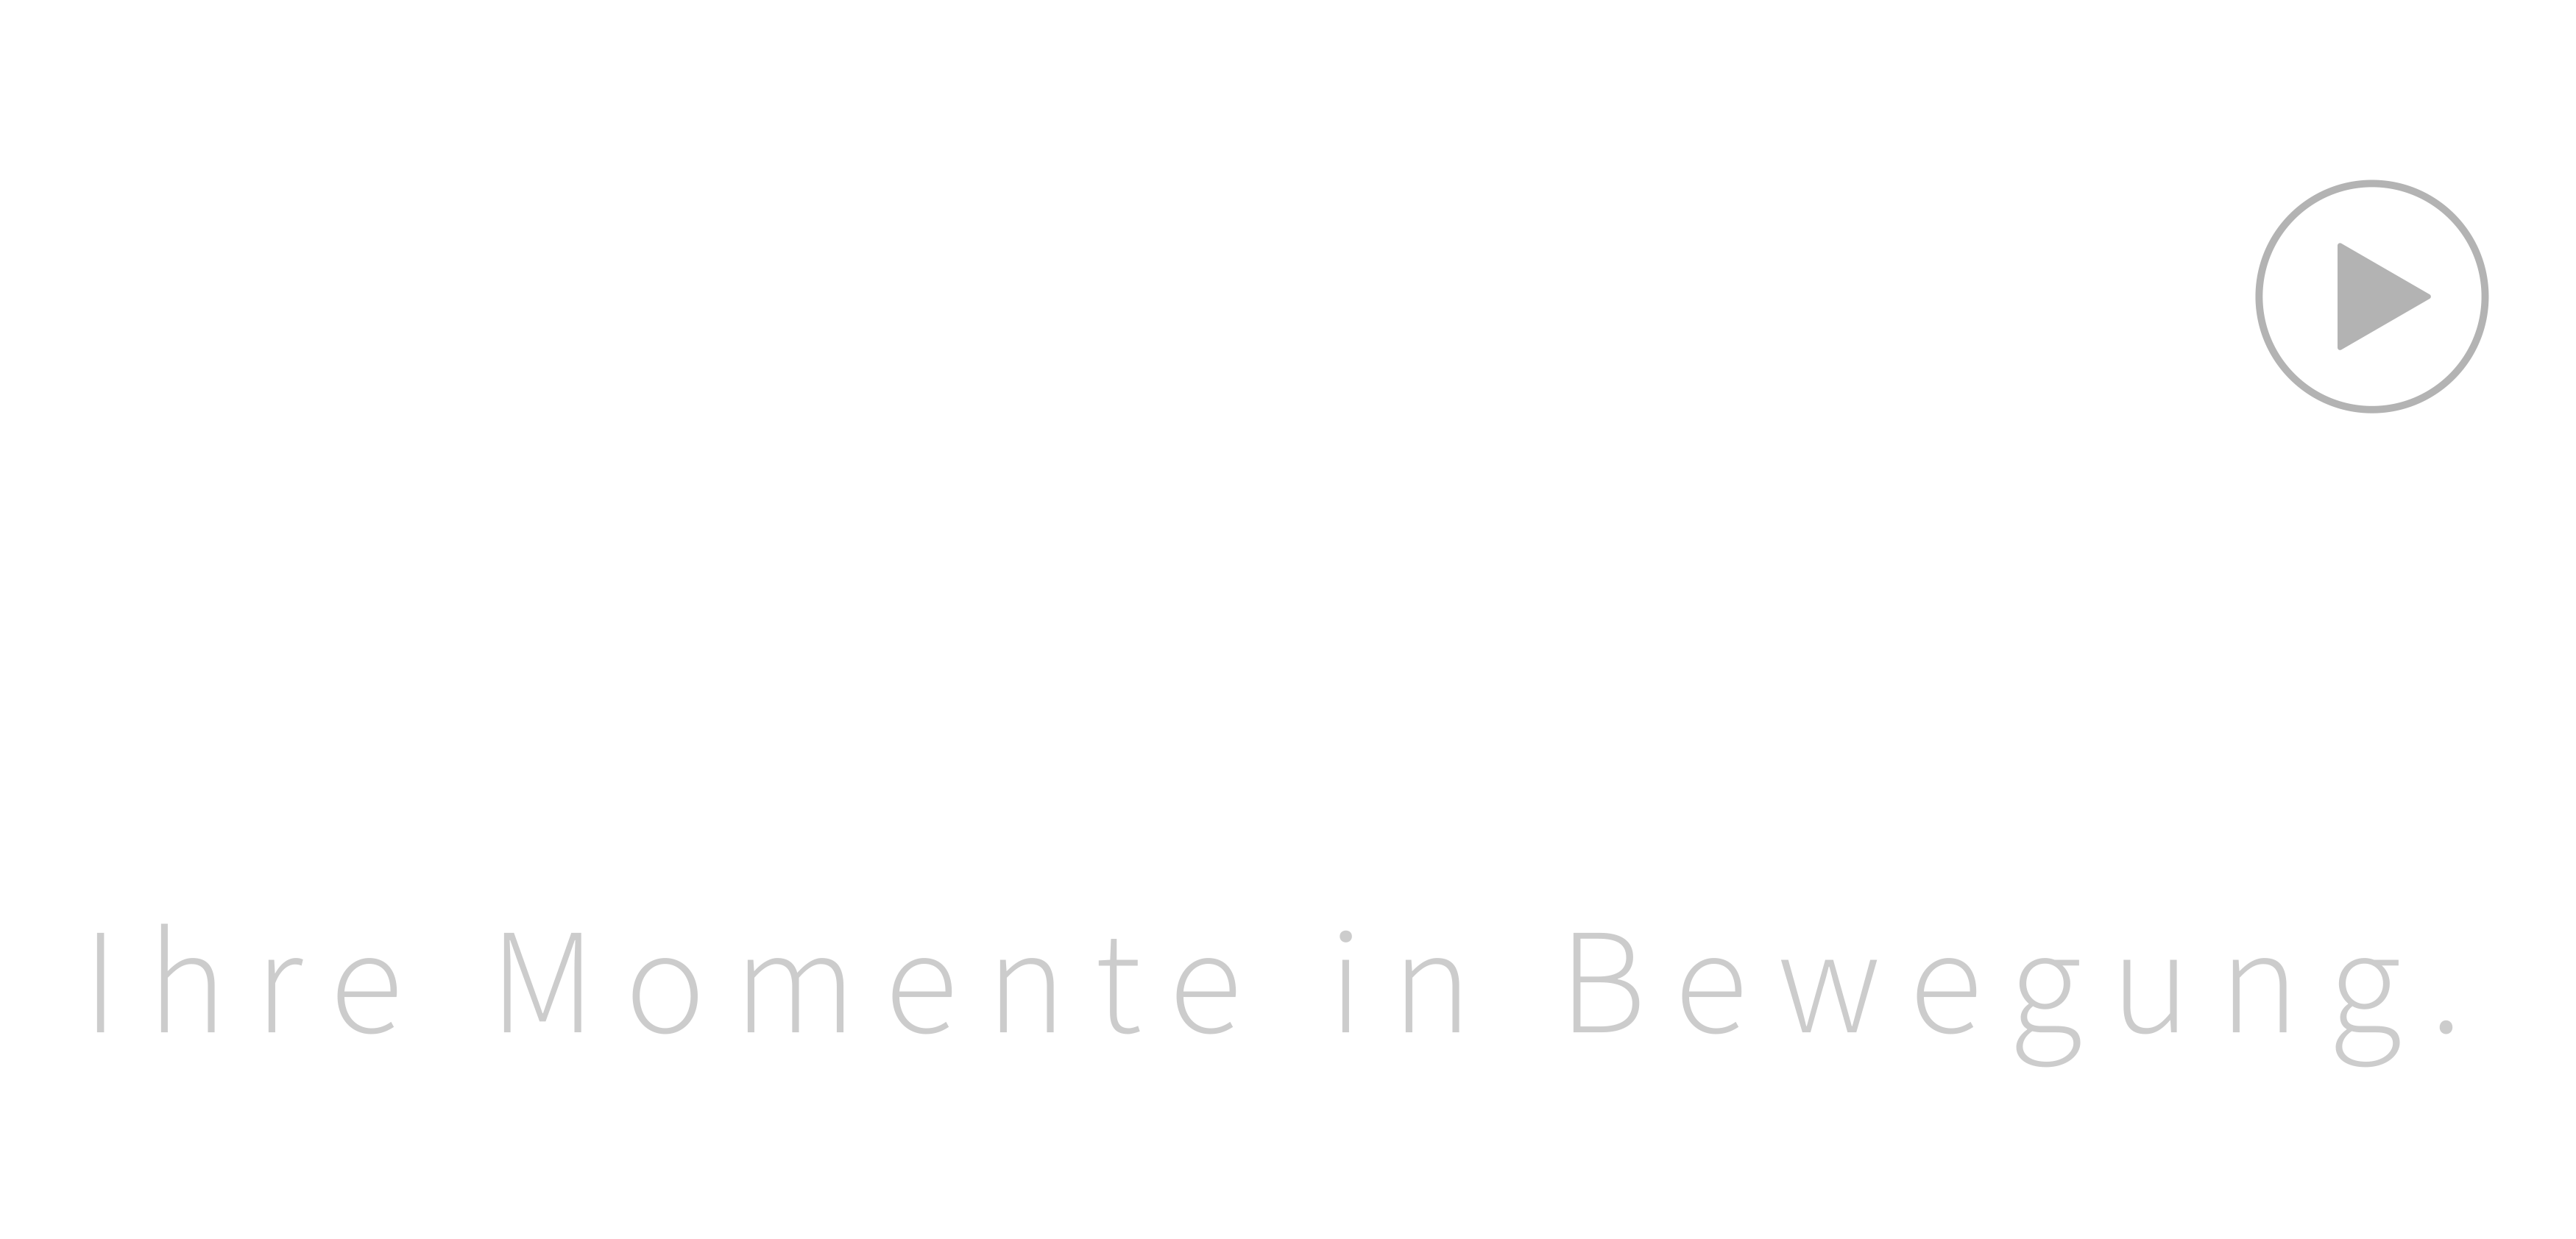 Steindorfer Videography